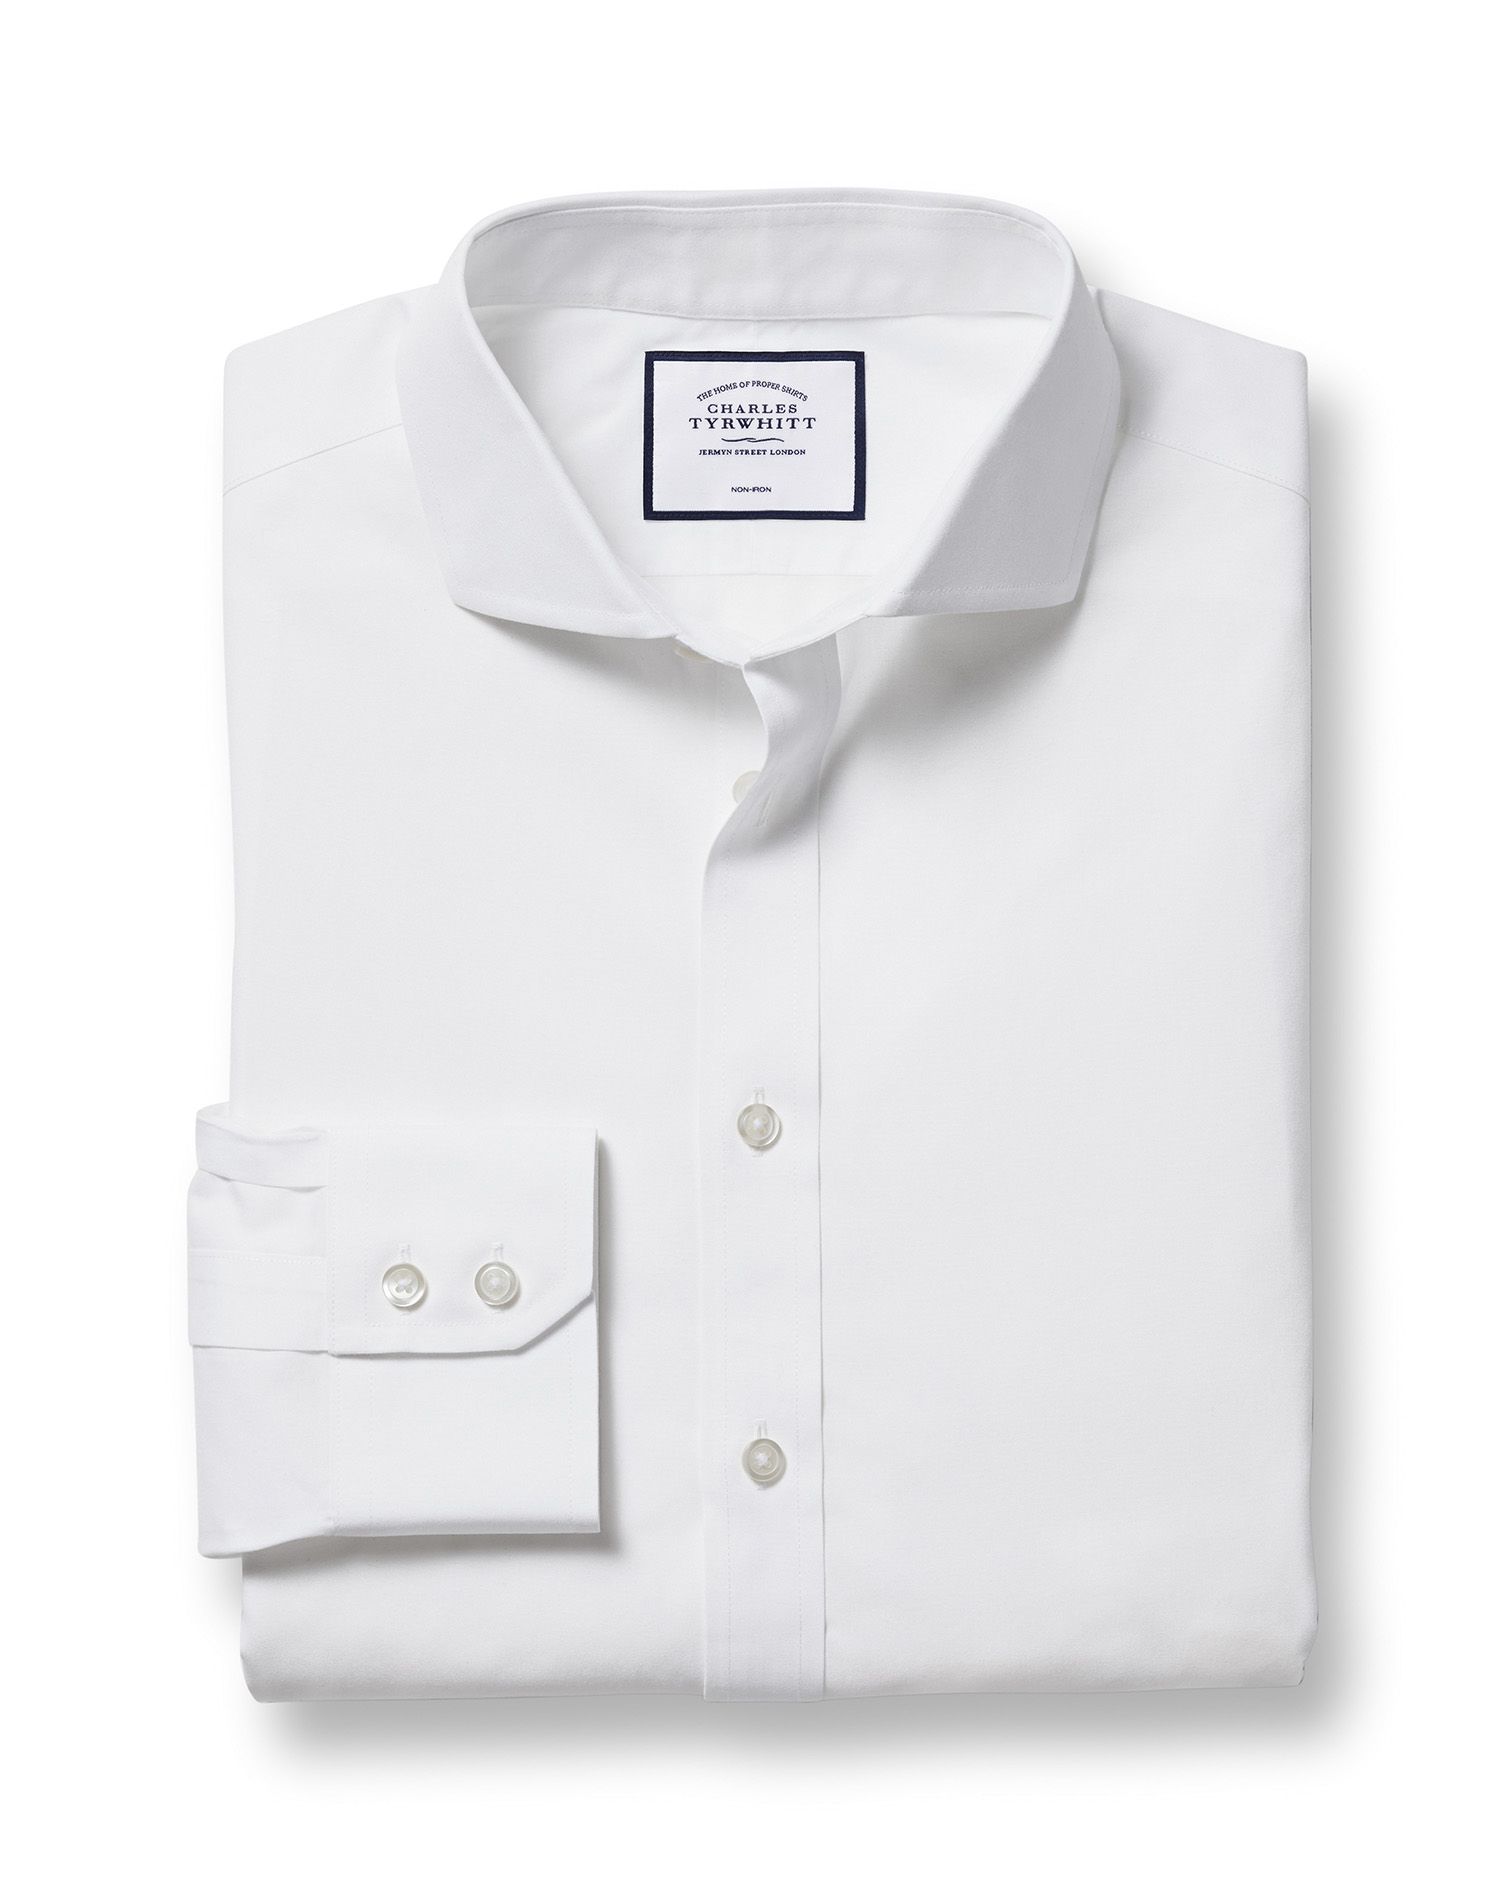 Extra Slim Fit White Non-Iron Poplin Cutaway Cotton Formal Shirt Double Cuff Size 16.5/34 by Charles